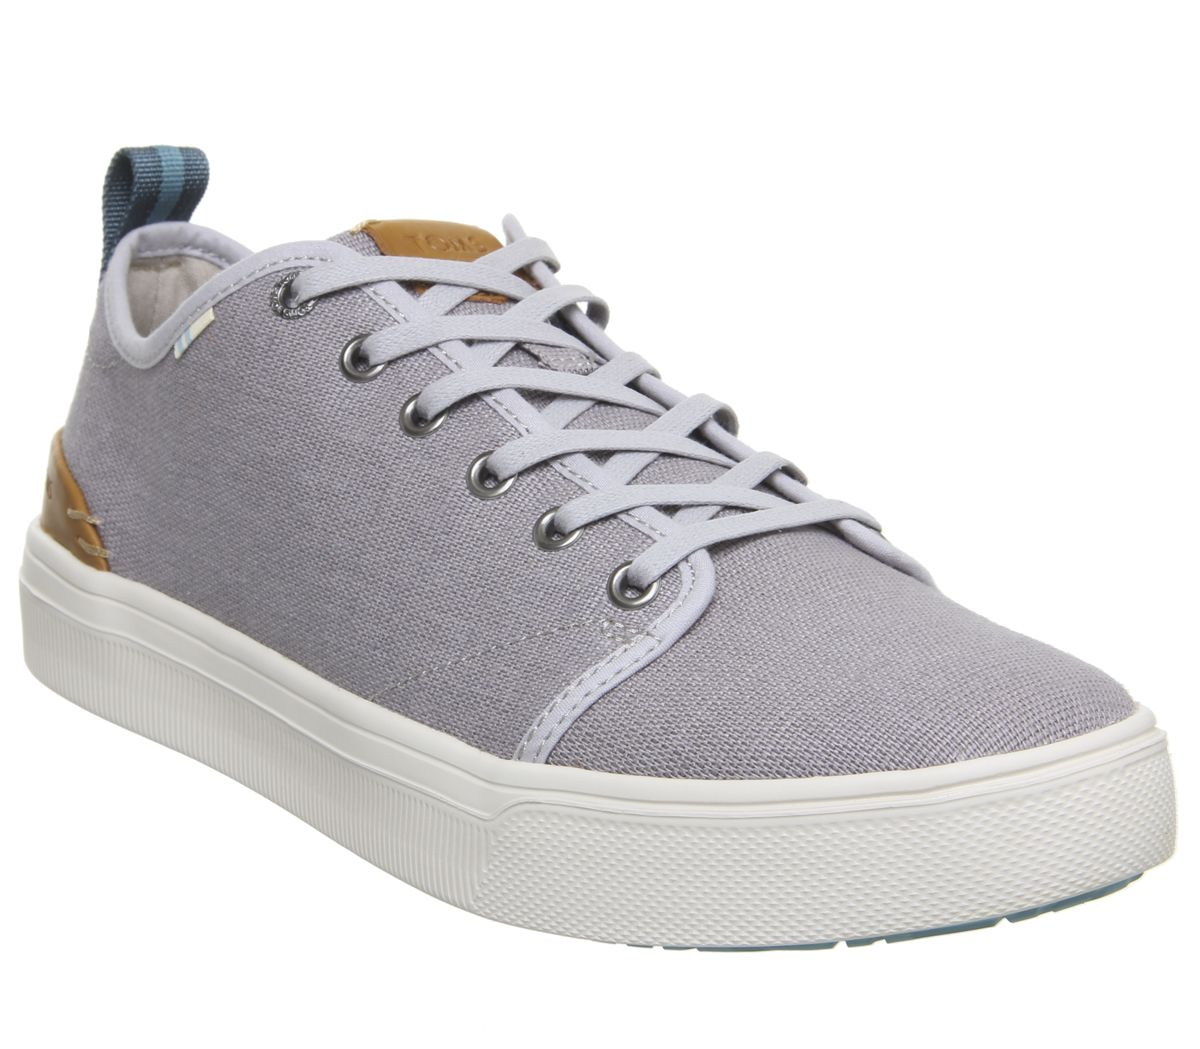 a04dc163a41 Toms Trvl Lite Low Trainers Drizzle Grey Heritage Canvas - Casual